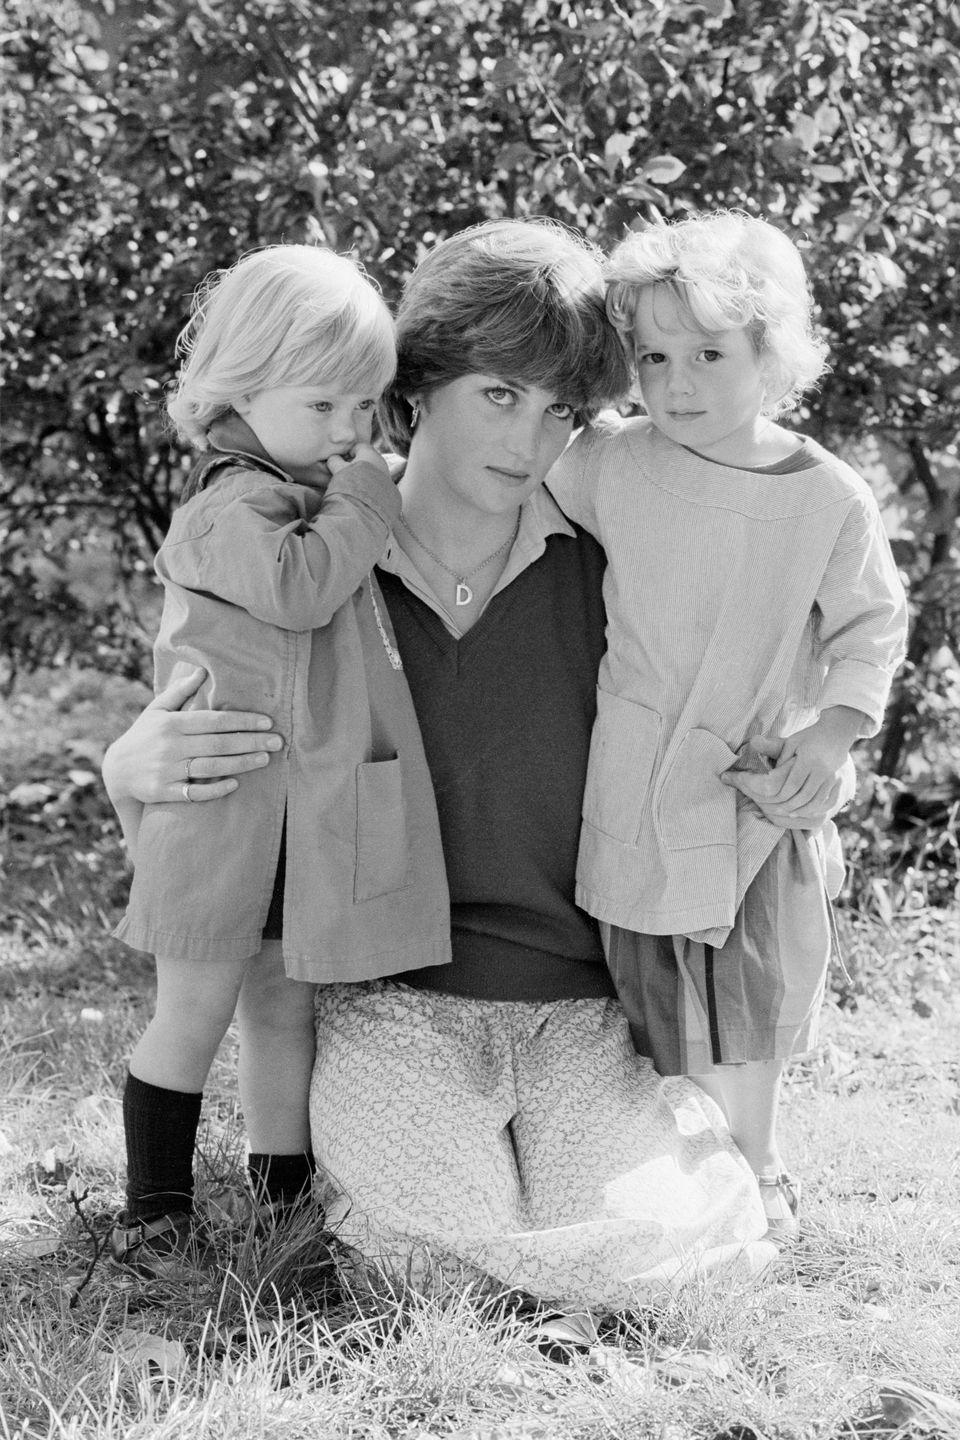 """<p>In 1980, the heir apparent started taking a serious interest in the 19-year-old as a potential bride. Diana was living in London at this point, intermittently working as a dance instructor, nanny and nursery assistant. Here she is at her job with Young England Kindergarten school in Pimlico<span class=""""redactor-invisible-space"""">.</span></p>"""